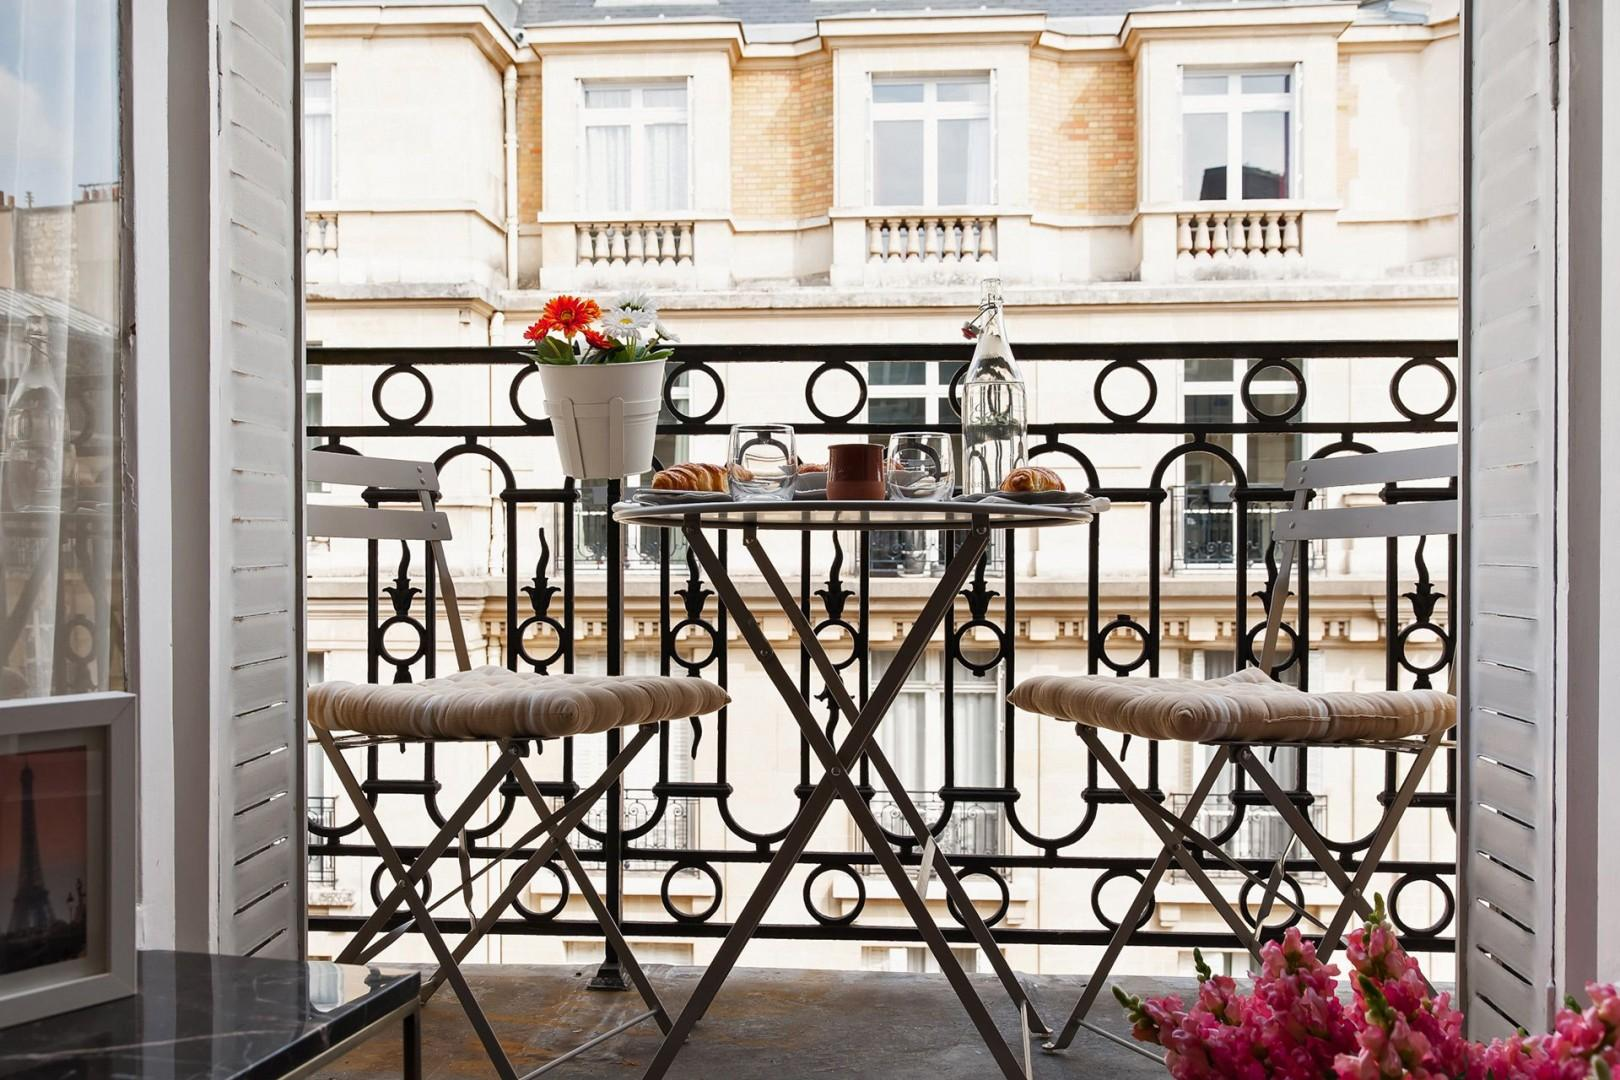 Charming balcony with a table perfect for two!